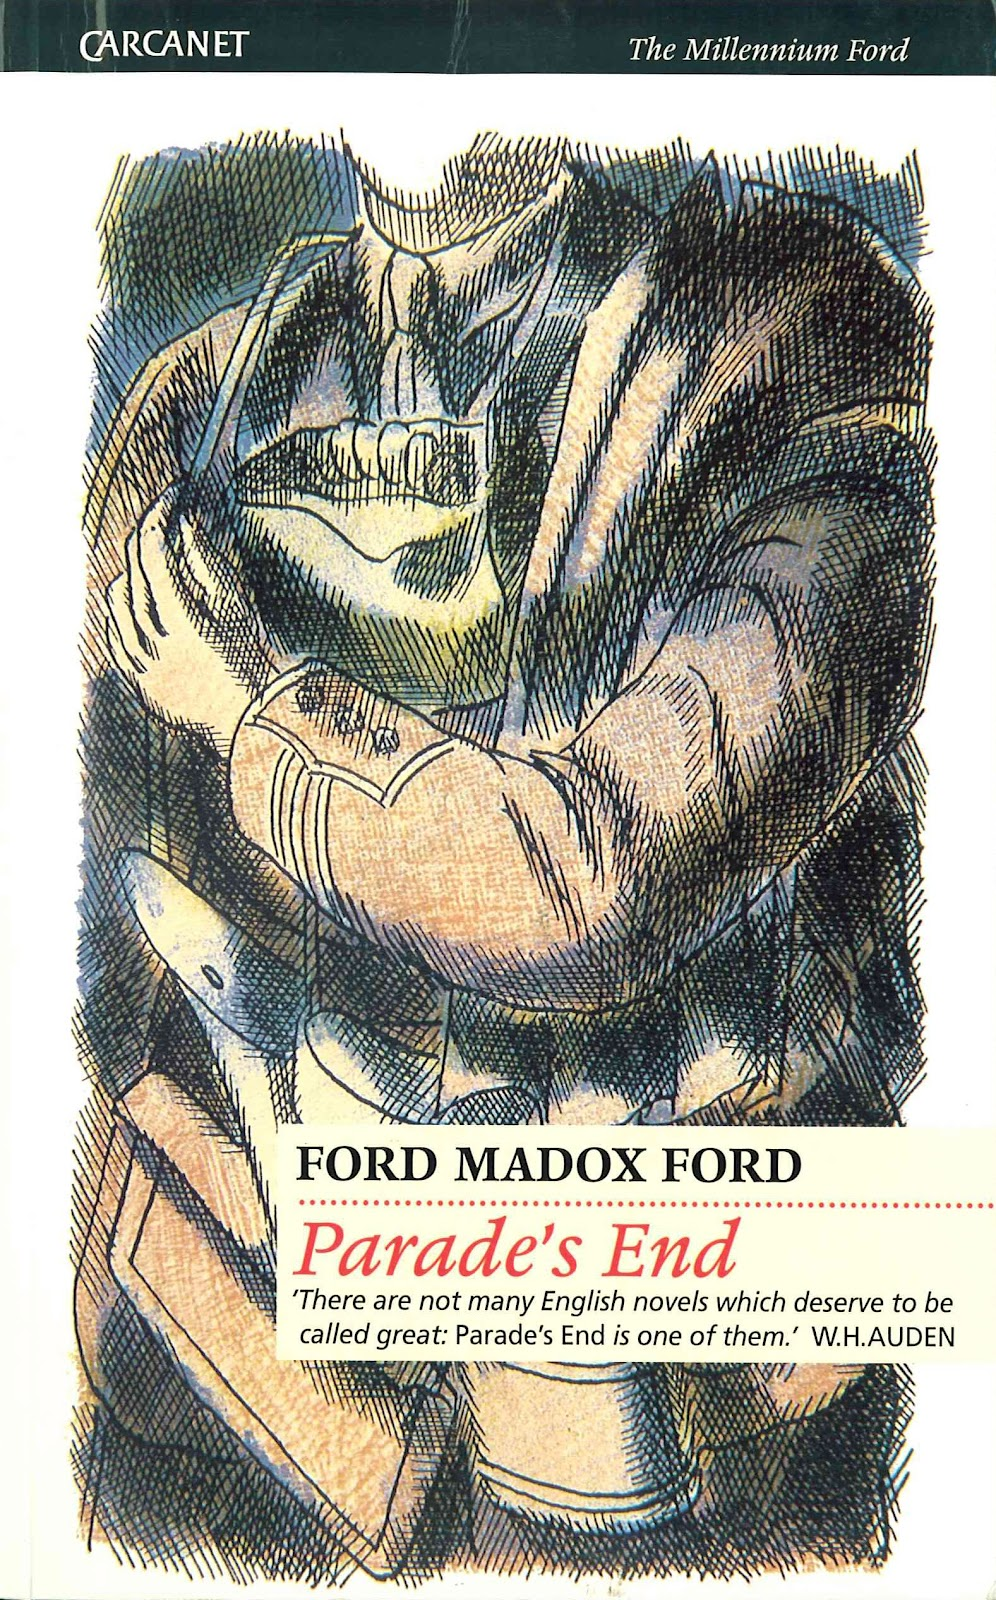 Ford, Parade's End old cover